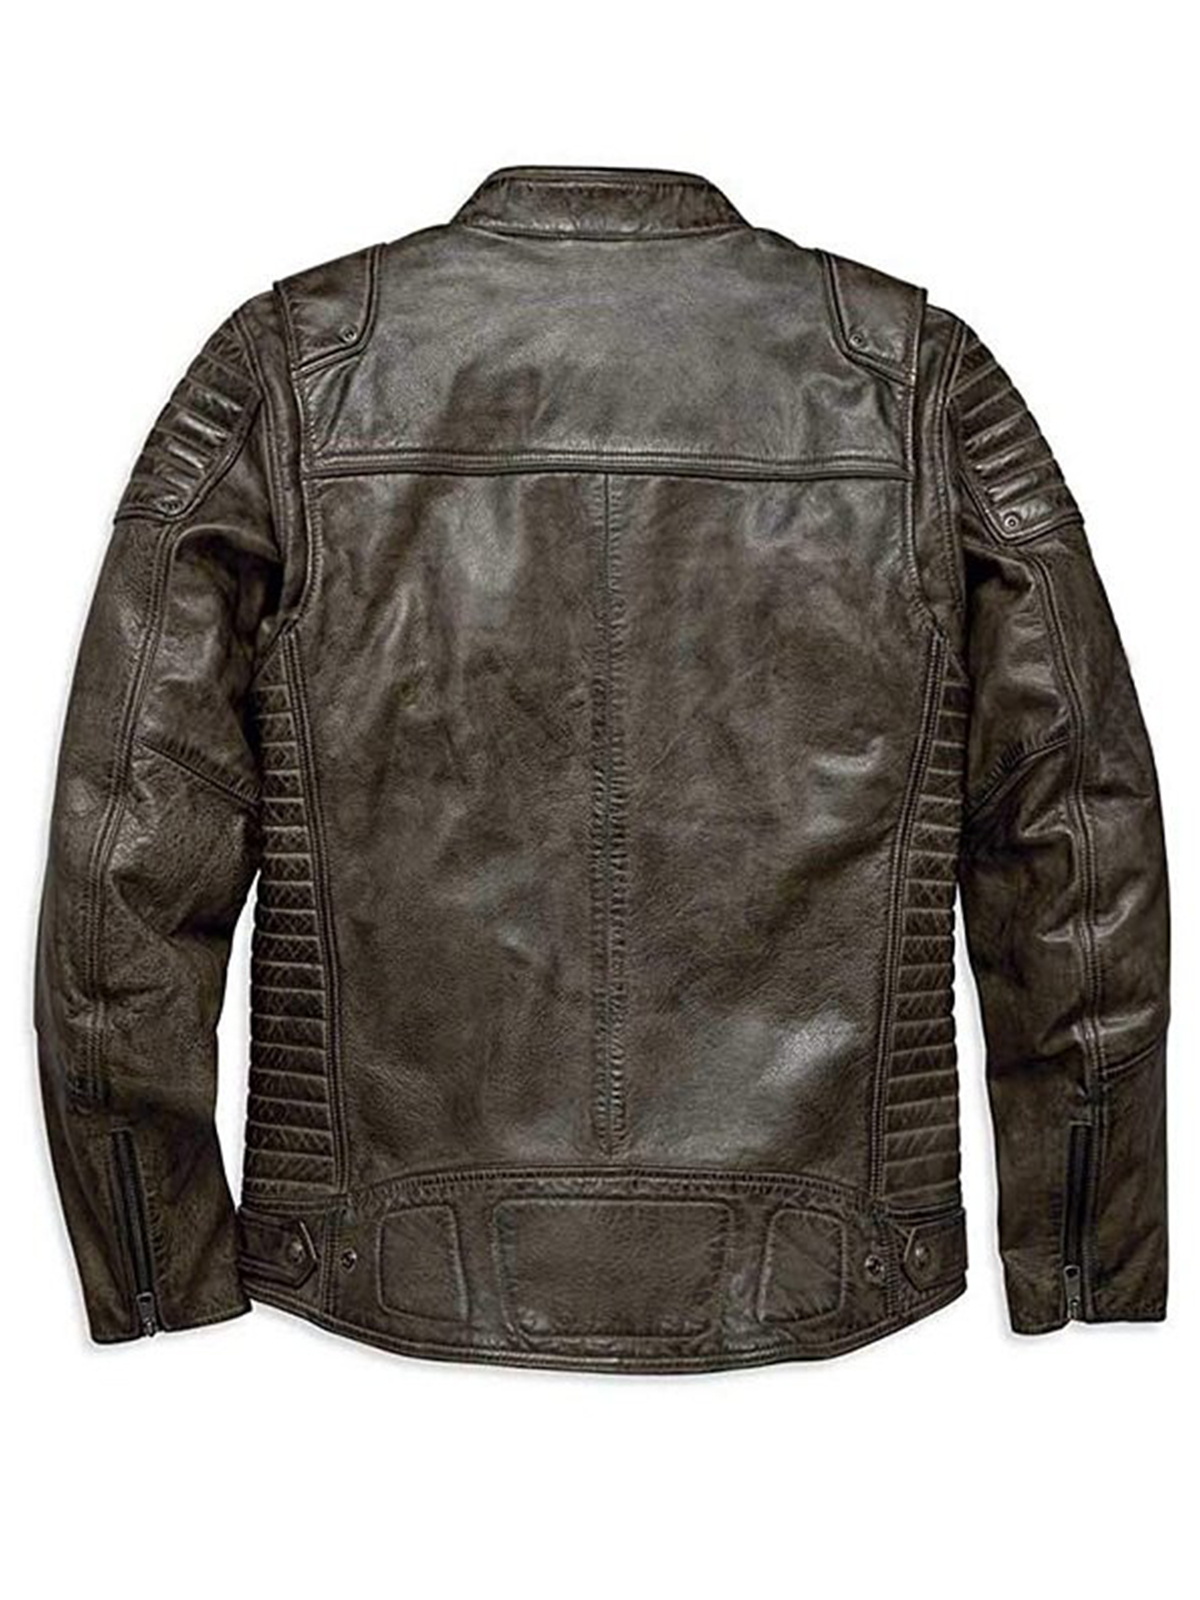 Harley Davidson Waxed Brown Leather Jacket - Stars Jackets